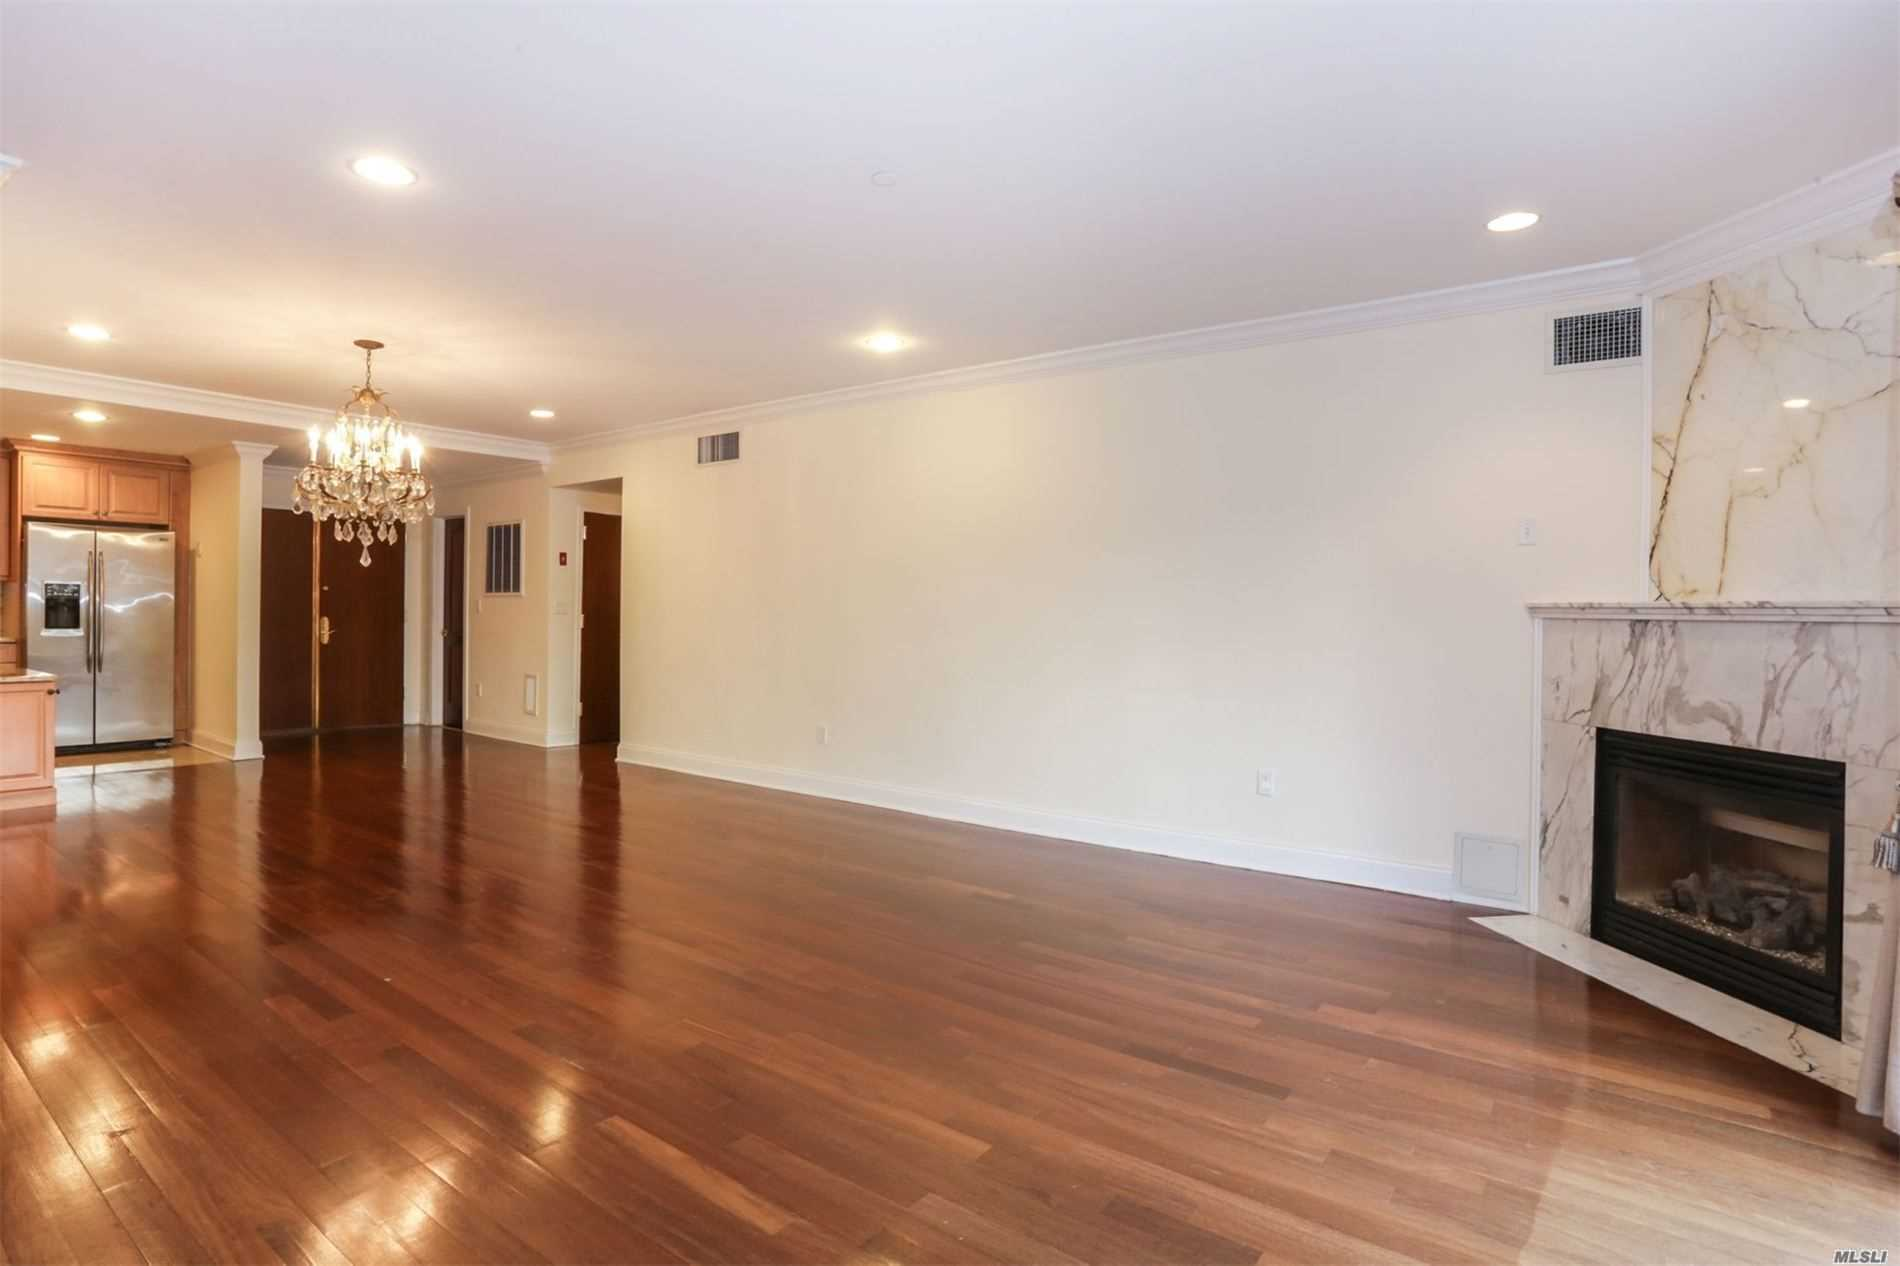 Property for sale at 171 Great Neck Road # 1K, Great Neck NY 11021, Great Neck,  New York 11021